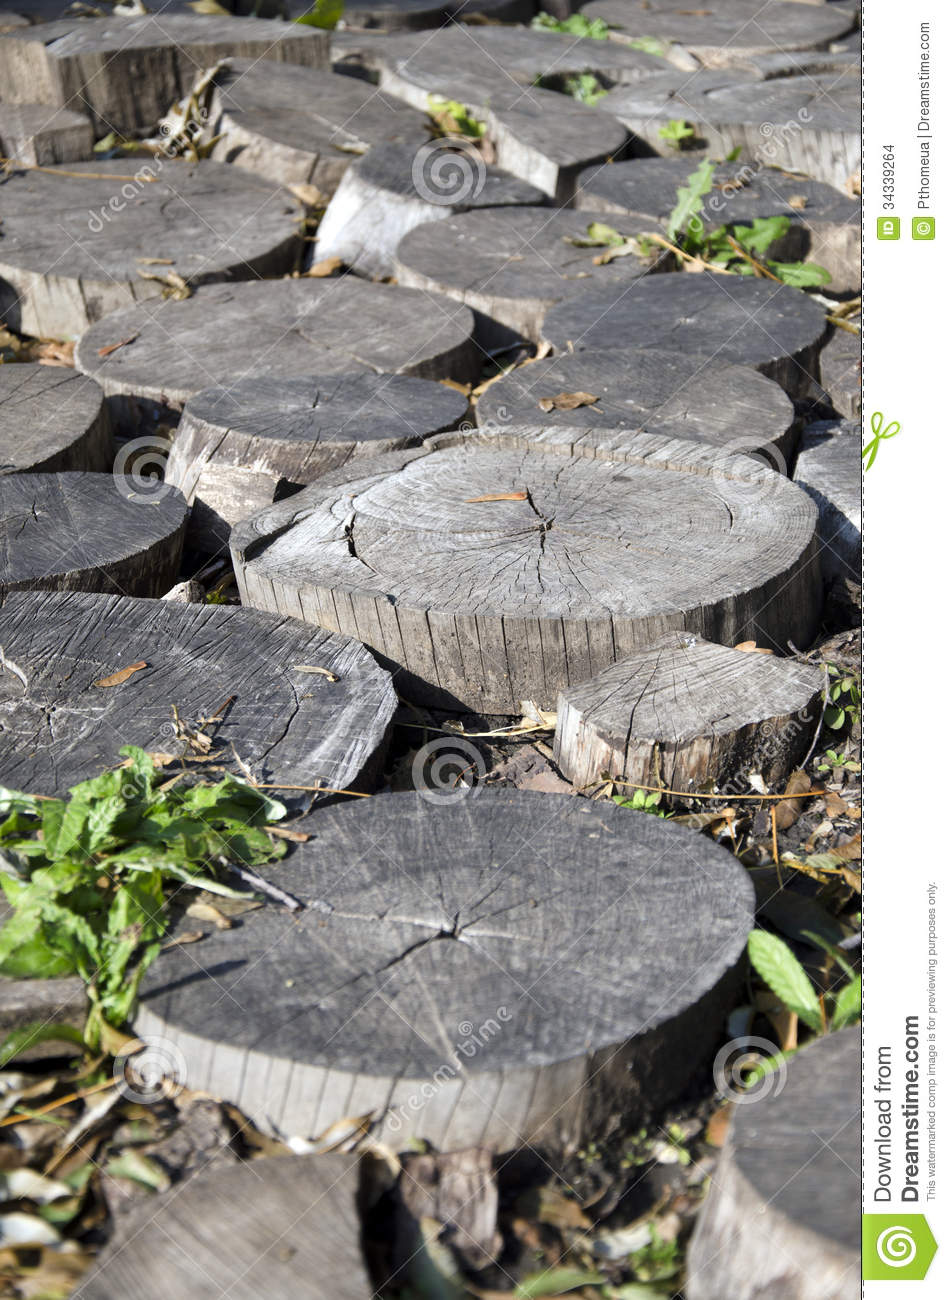 fragment of garden decor of wood scraps round logs portrait, Gardens/